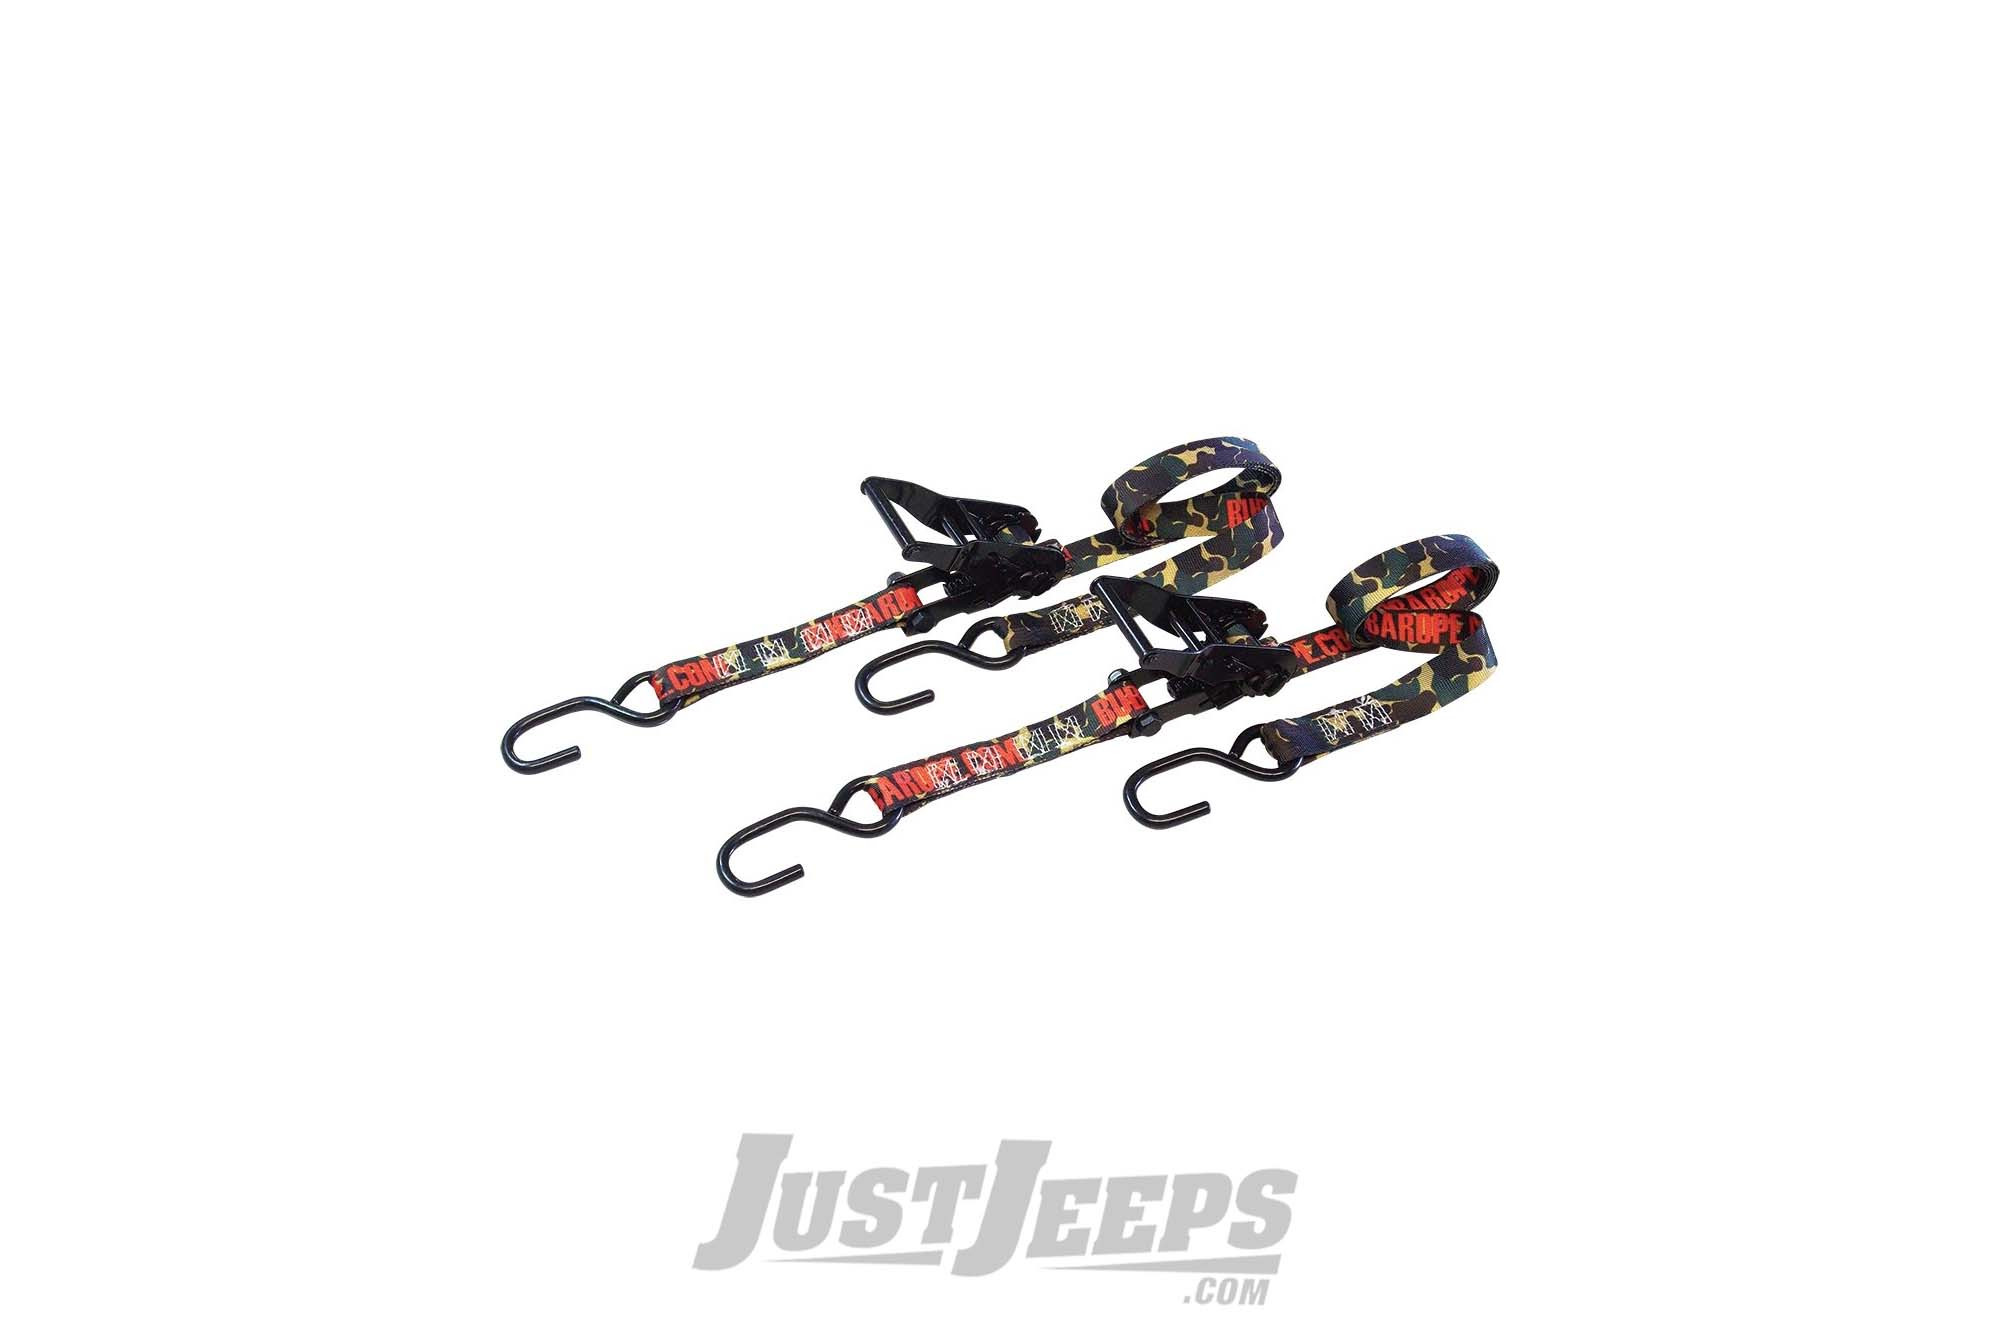 Bubba Rope 6' Ratchet Tie-Downs (1,760lbs)